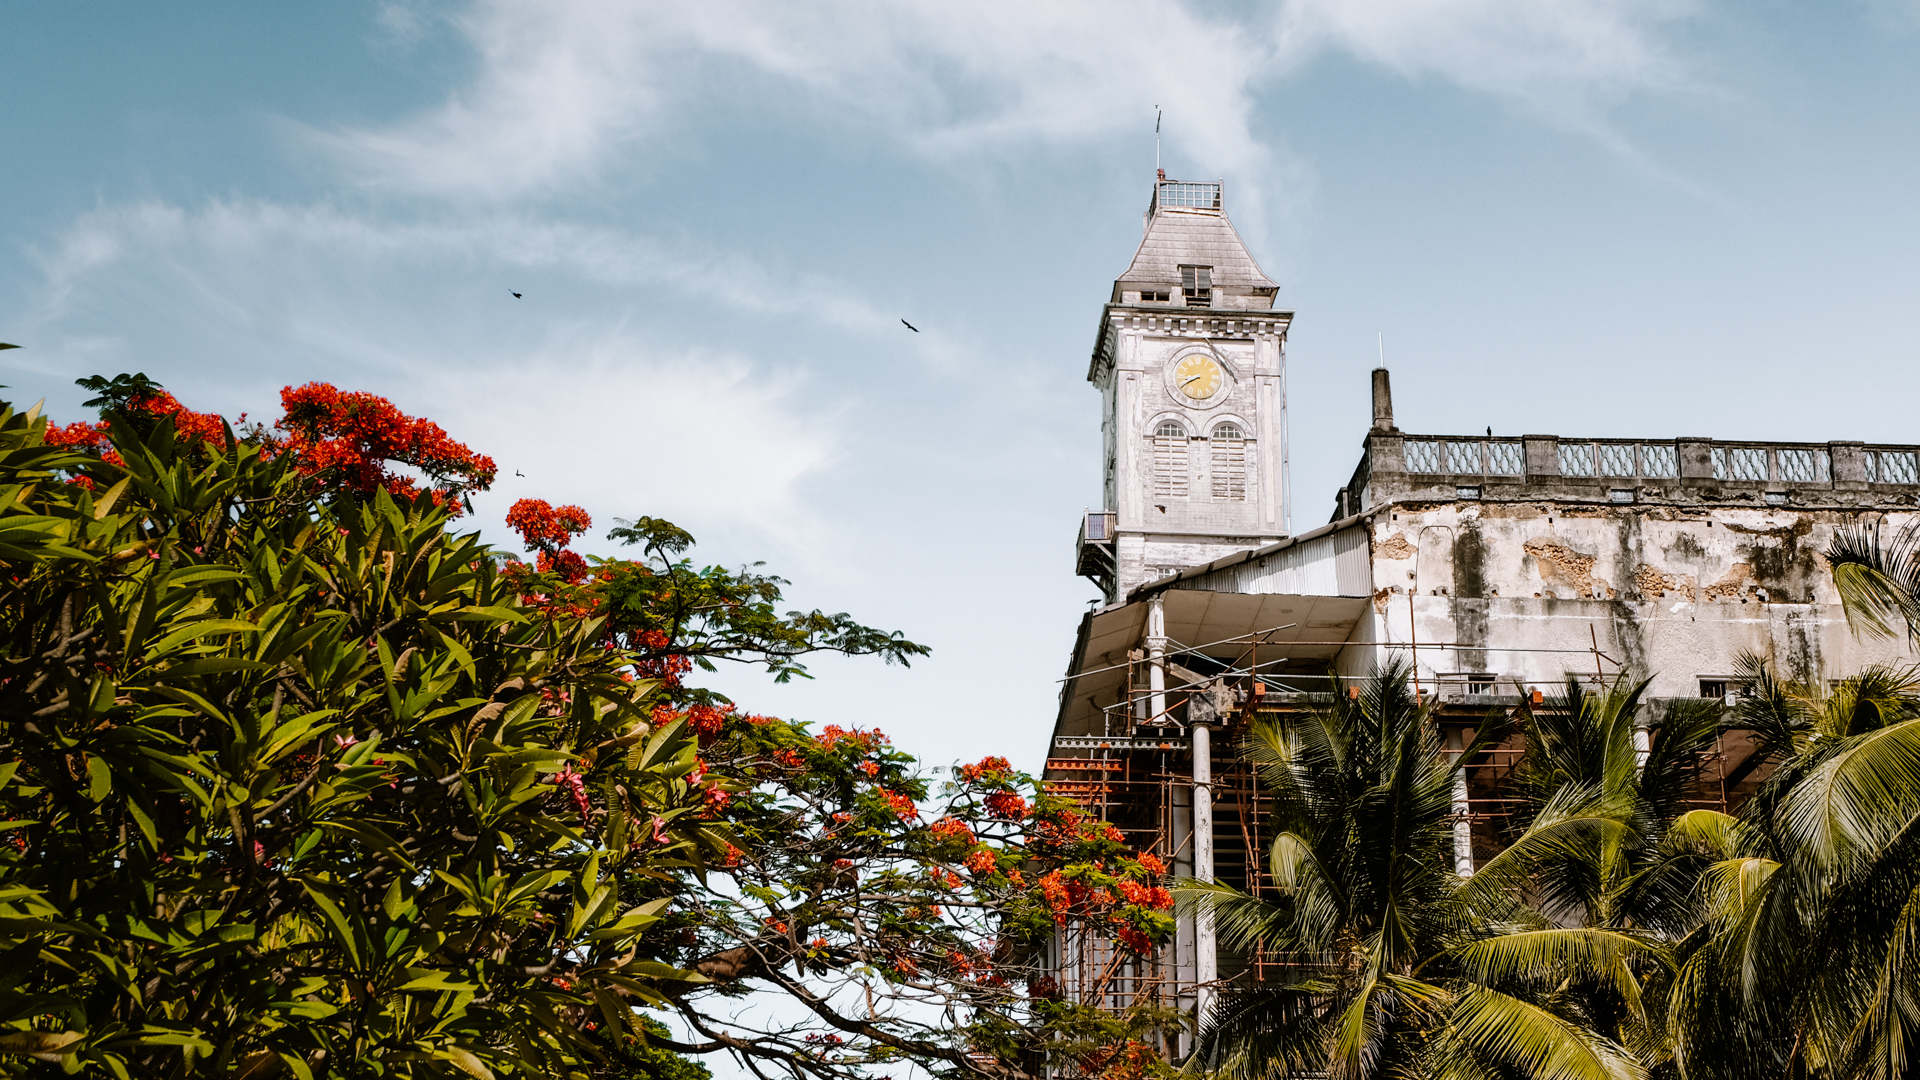 The bell tower of Beit-El-Ajaib, the House of Wonders, in Stone Town in Zanzibar, Tanzania